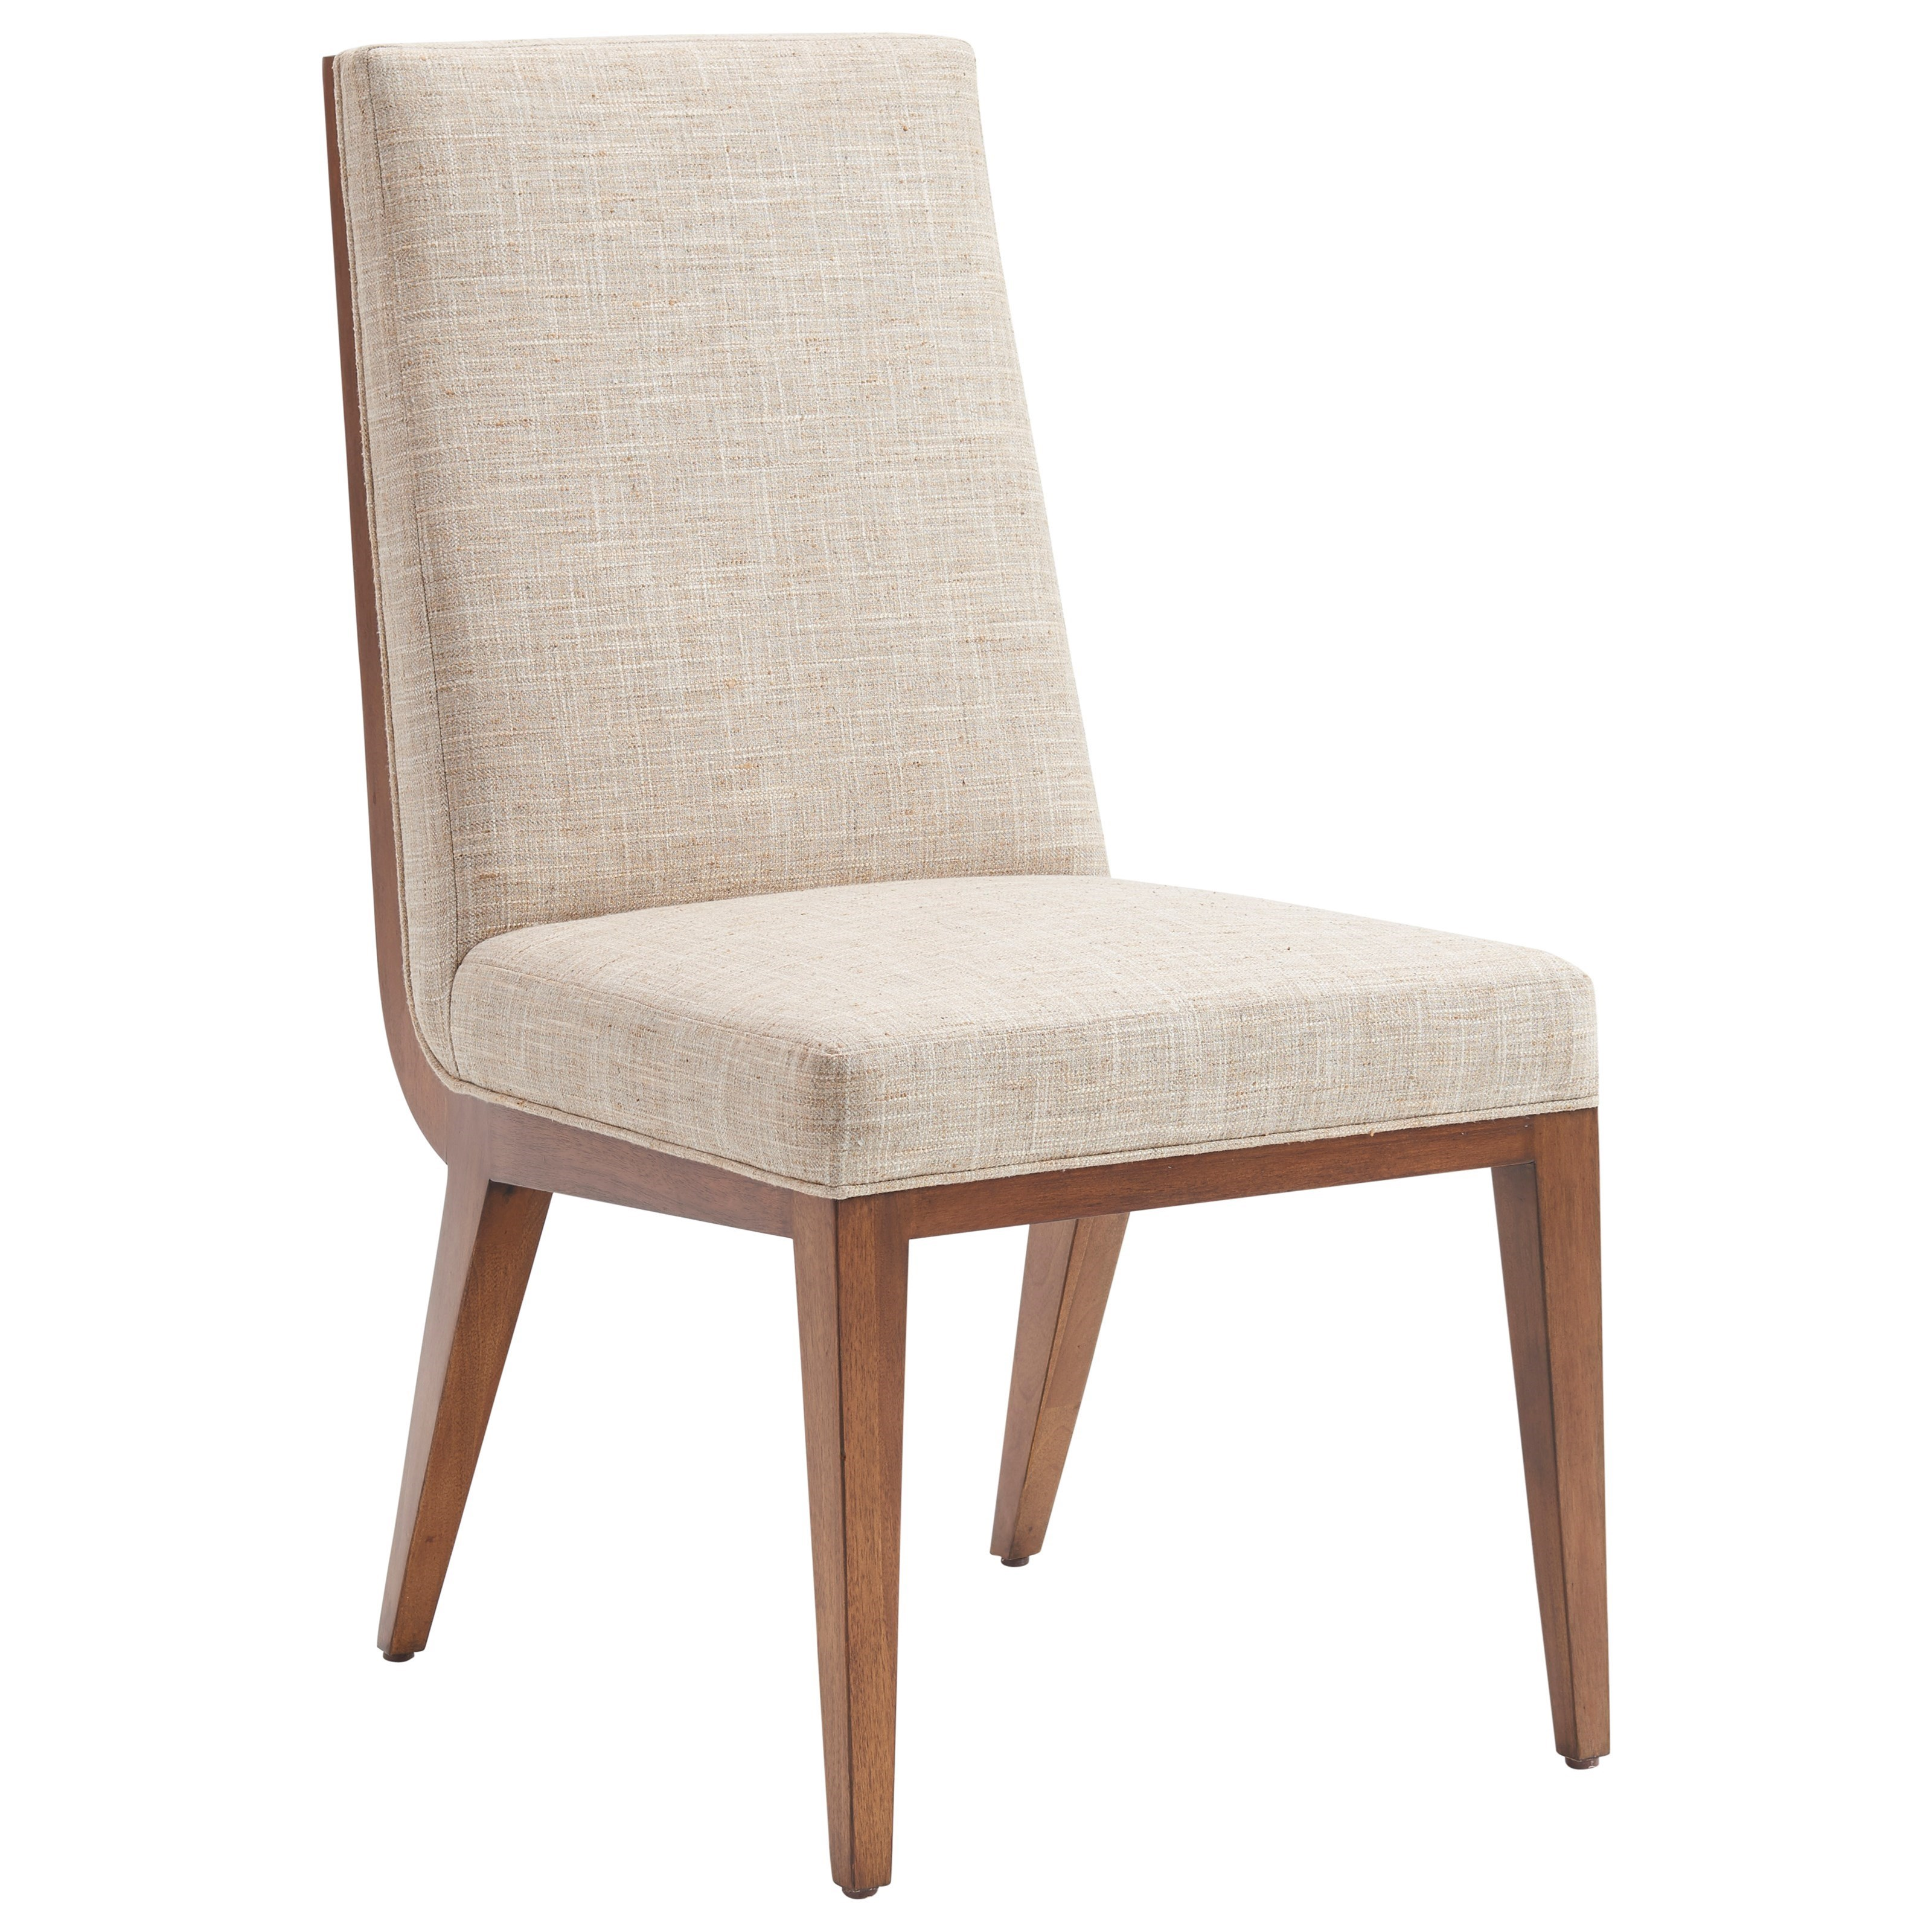 Lexington Kitano Marino Upholstered Side Chair - Item Number: 734-880-01